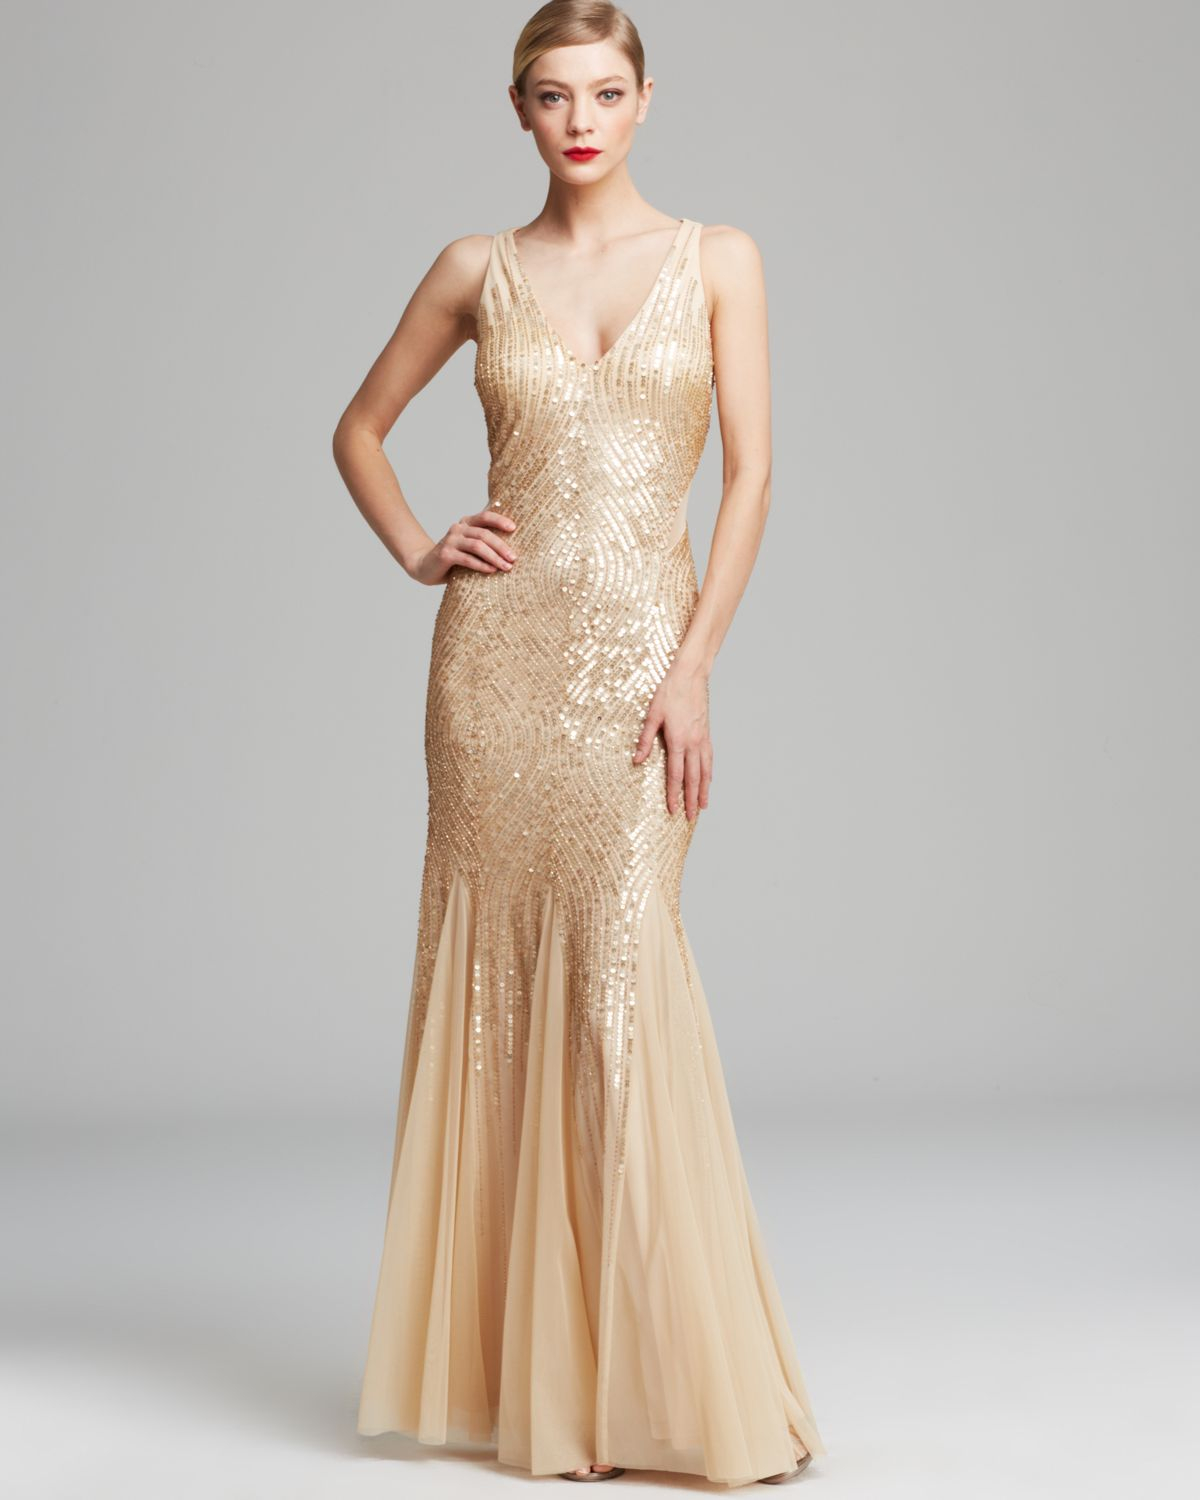 Adrianna Papell Gown Sleeveless V Neck Beaded With